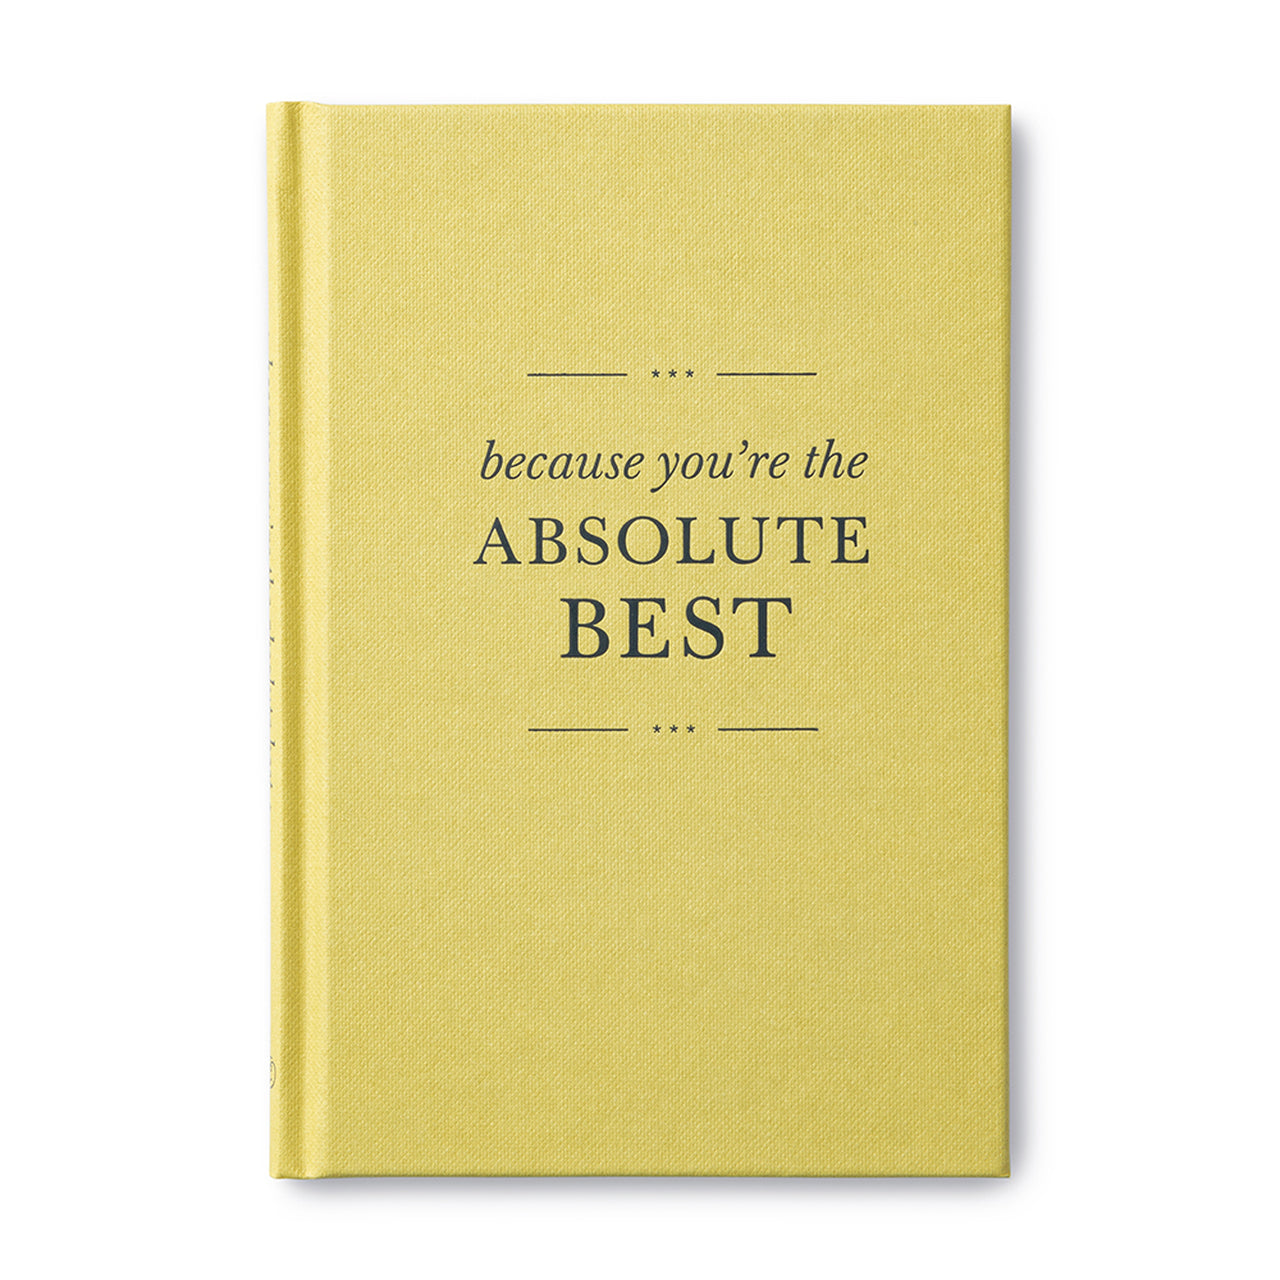 Because You're the Absolute Best, Book